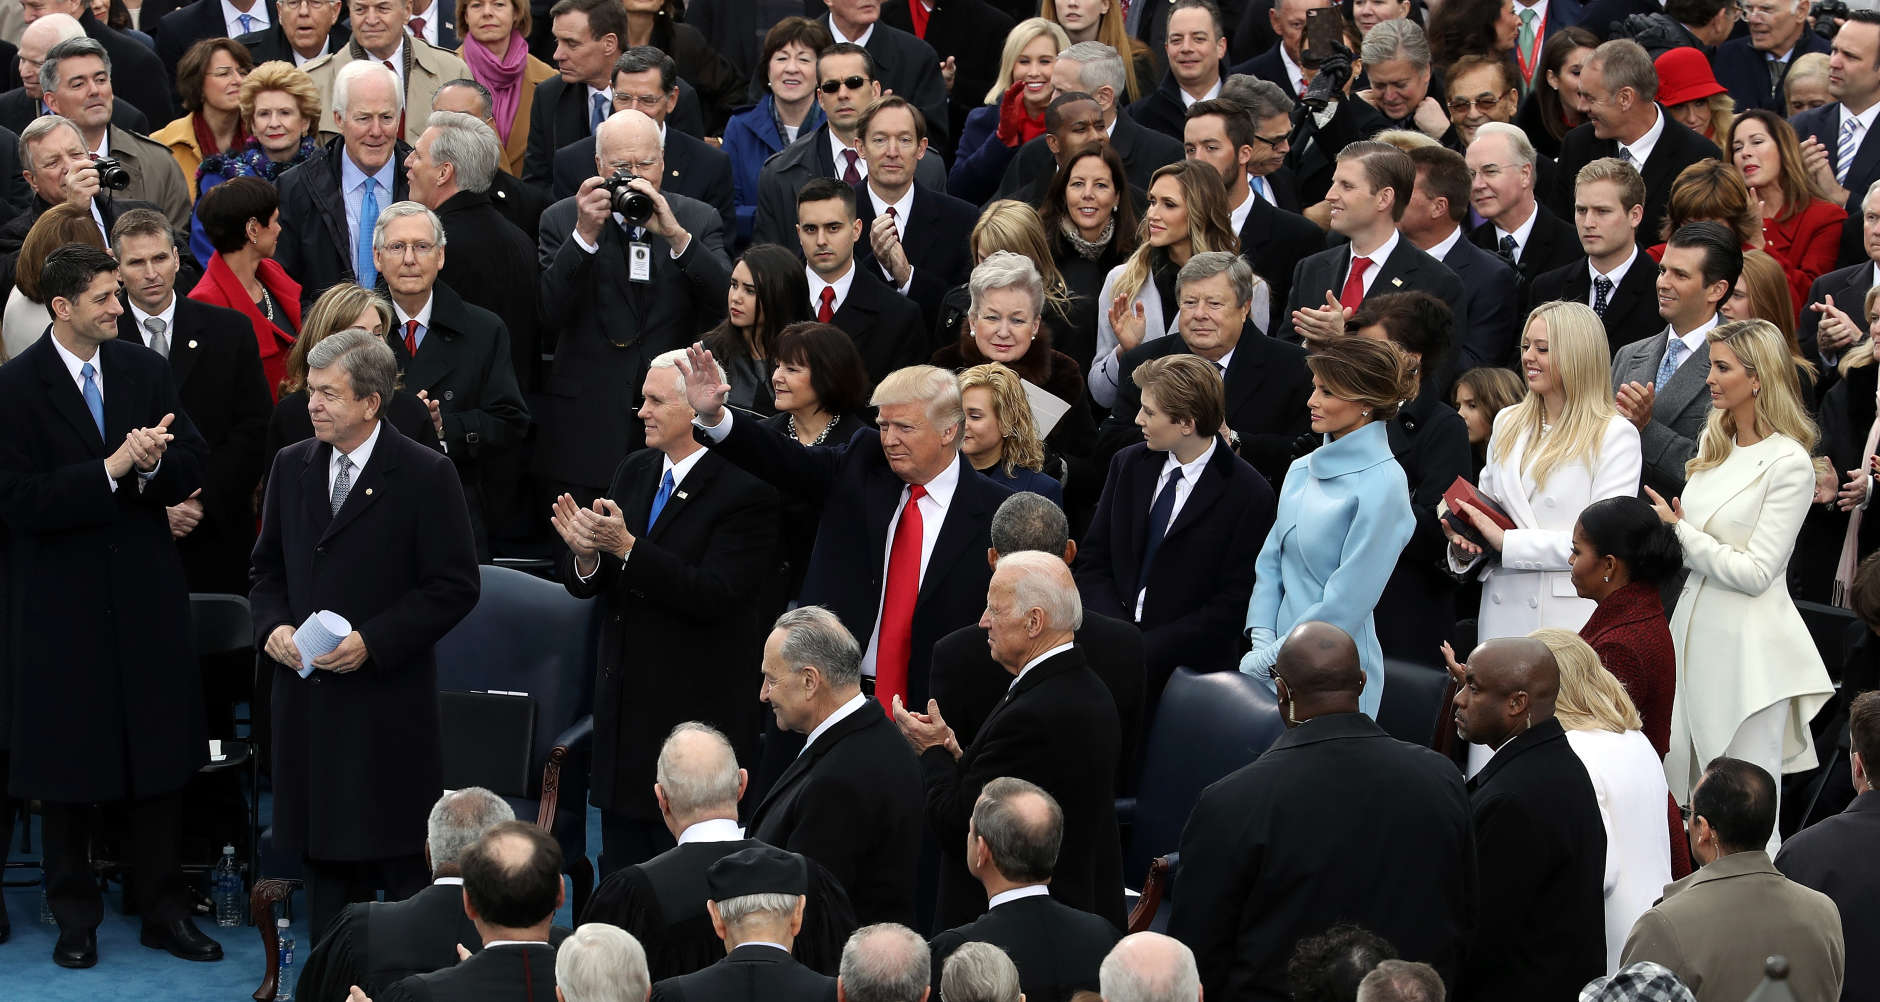 WASHINGTON, DC - JANUARY 20:  U.S. President-elect Donald Trump (C) arrives on the West Front of the U.S. Capitol on January 20, 2017 in Washington, DC. In today's inauguration ceremony Donald J. Trump becomes the 45th president of the United States.  (Photo by Drew Angerer/Getty Images)